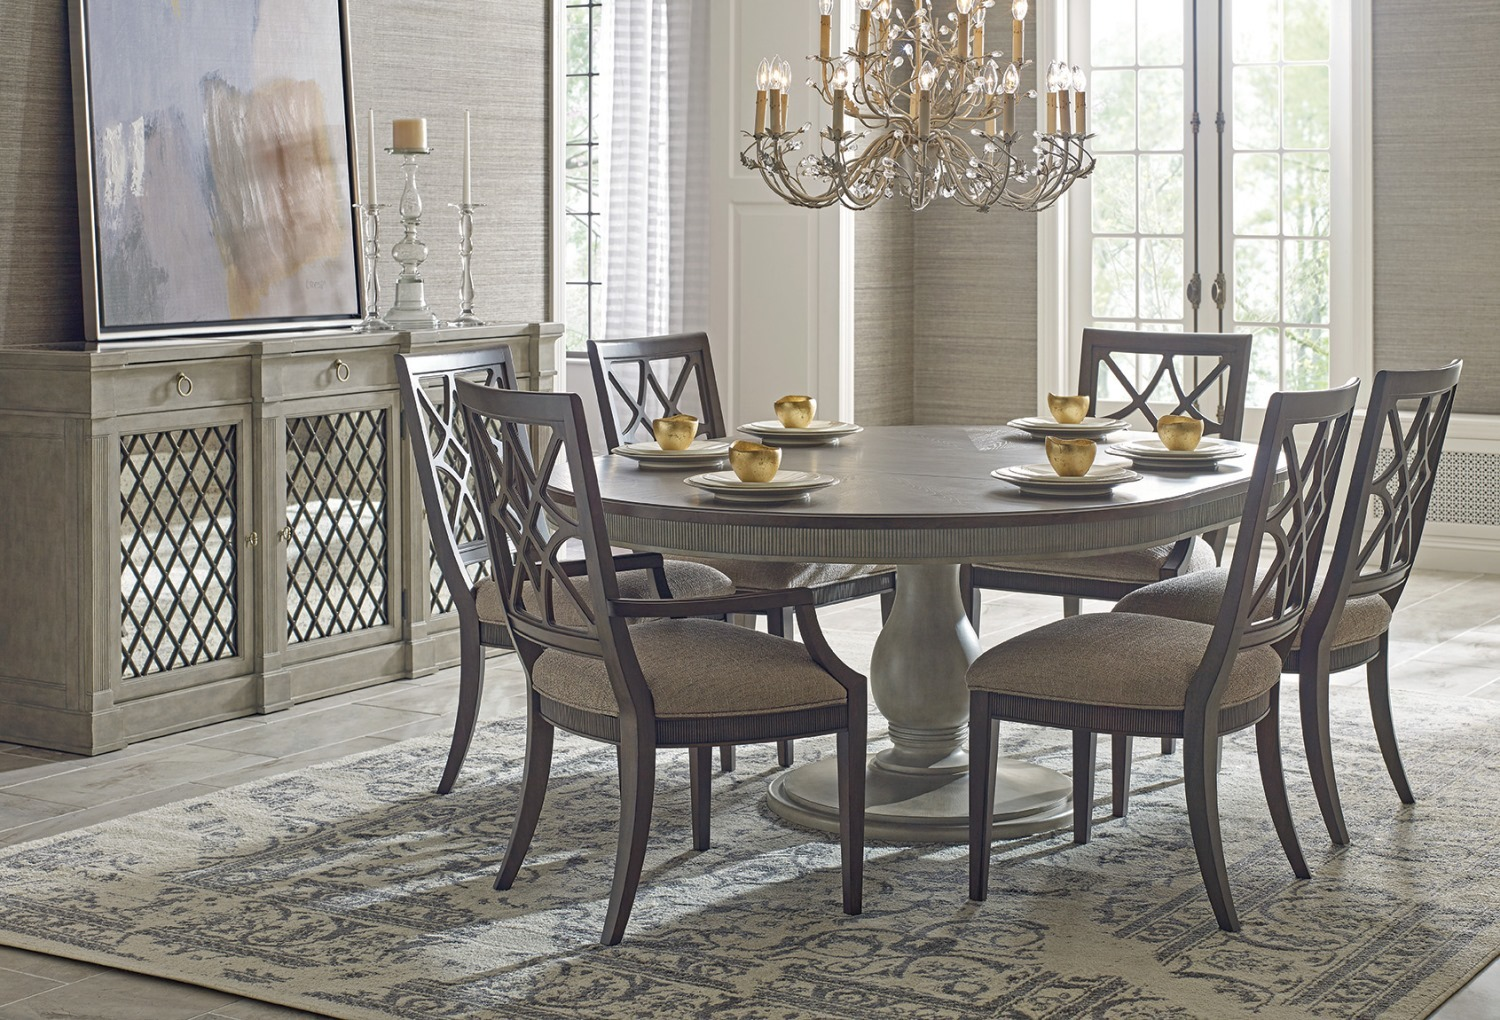 American drew dining room chairs